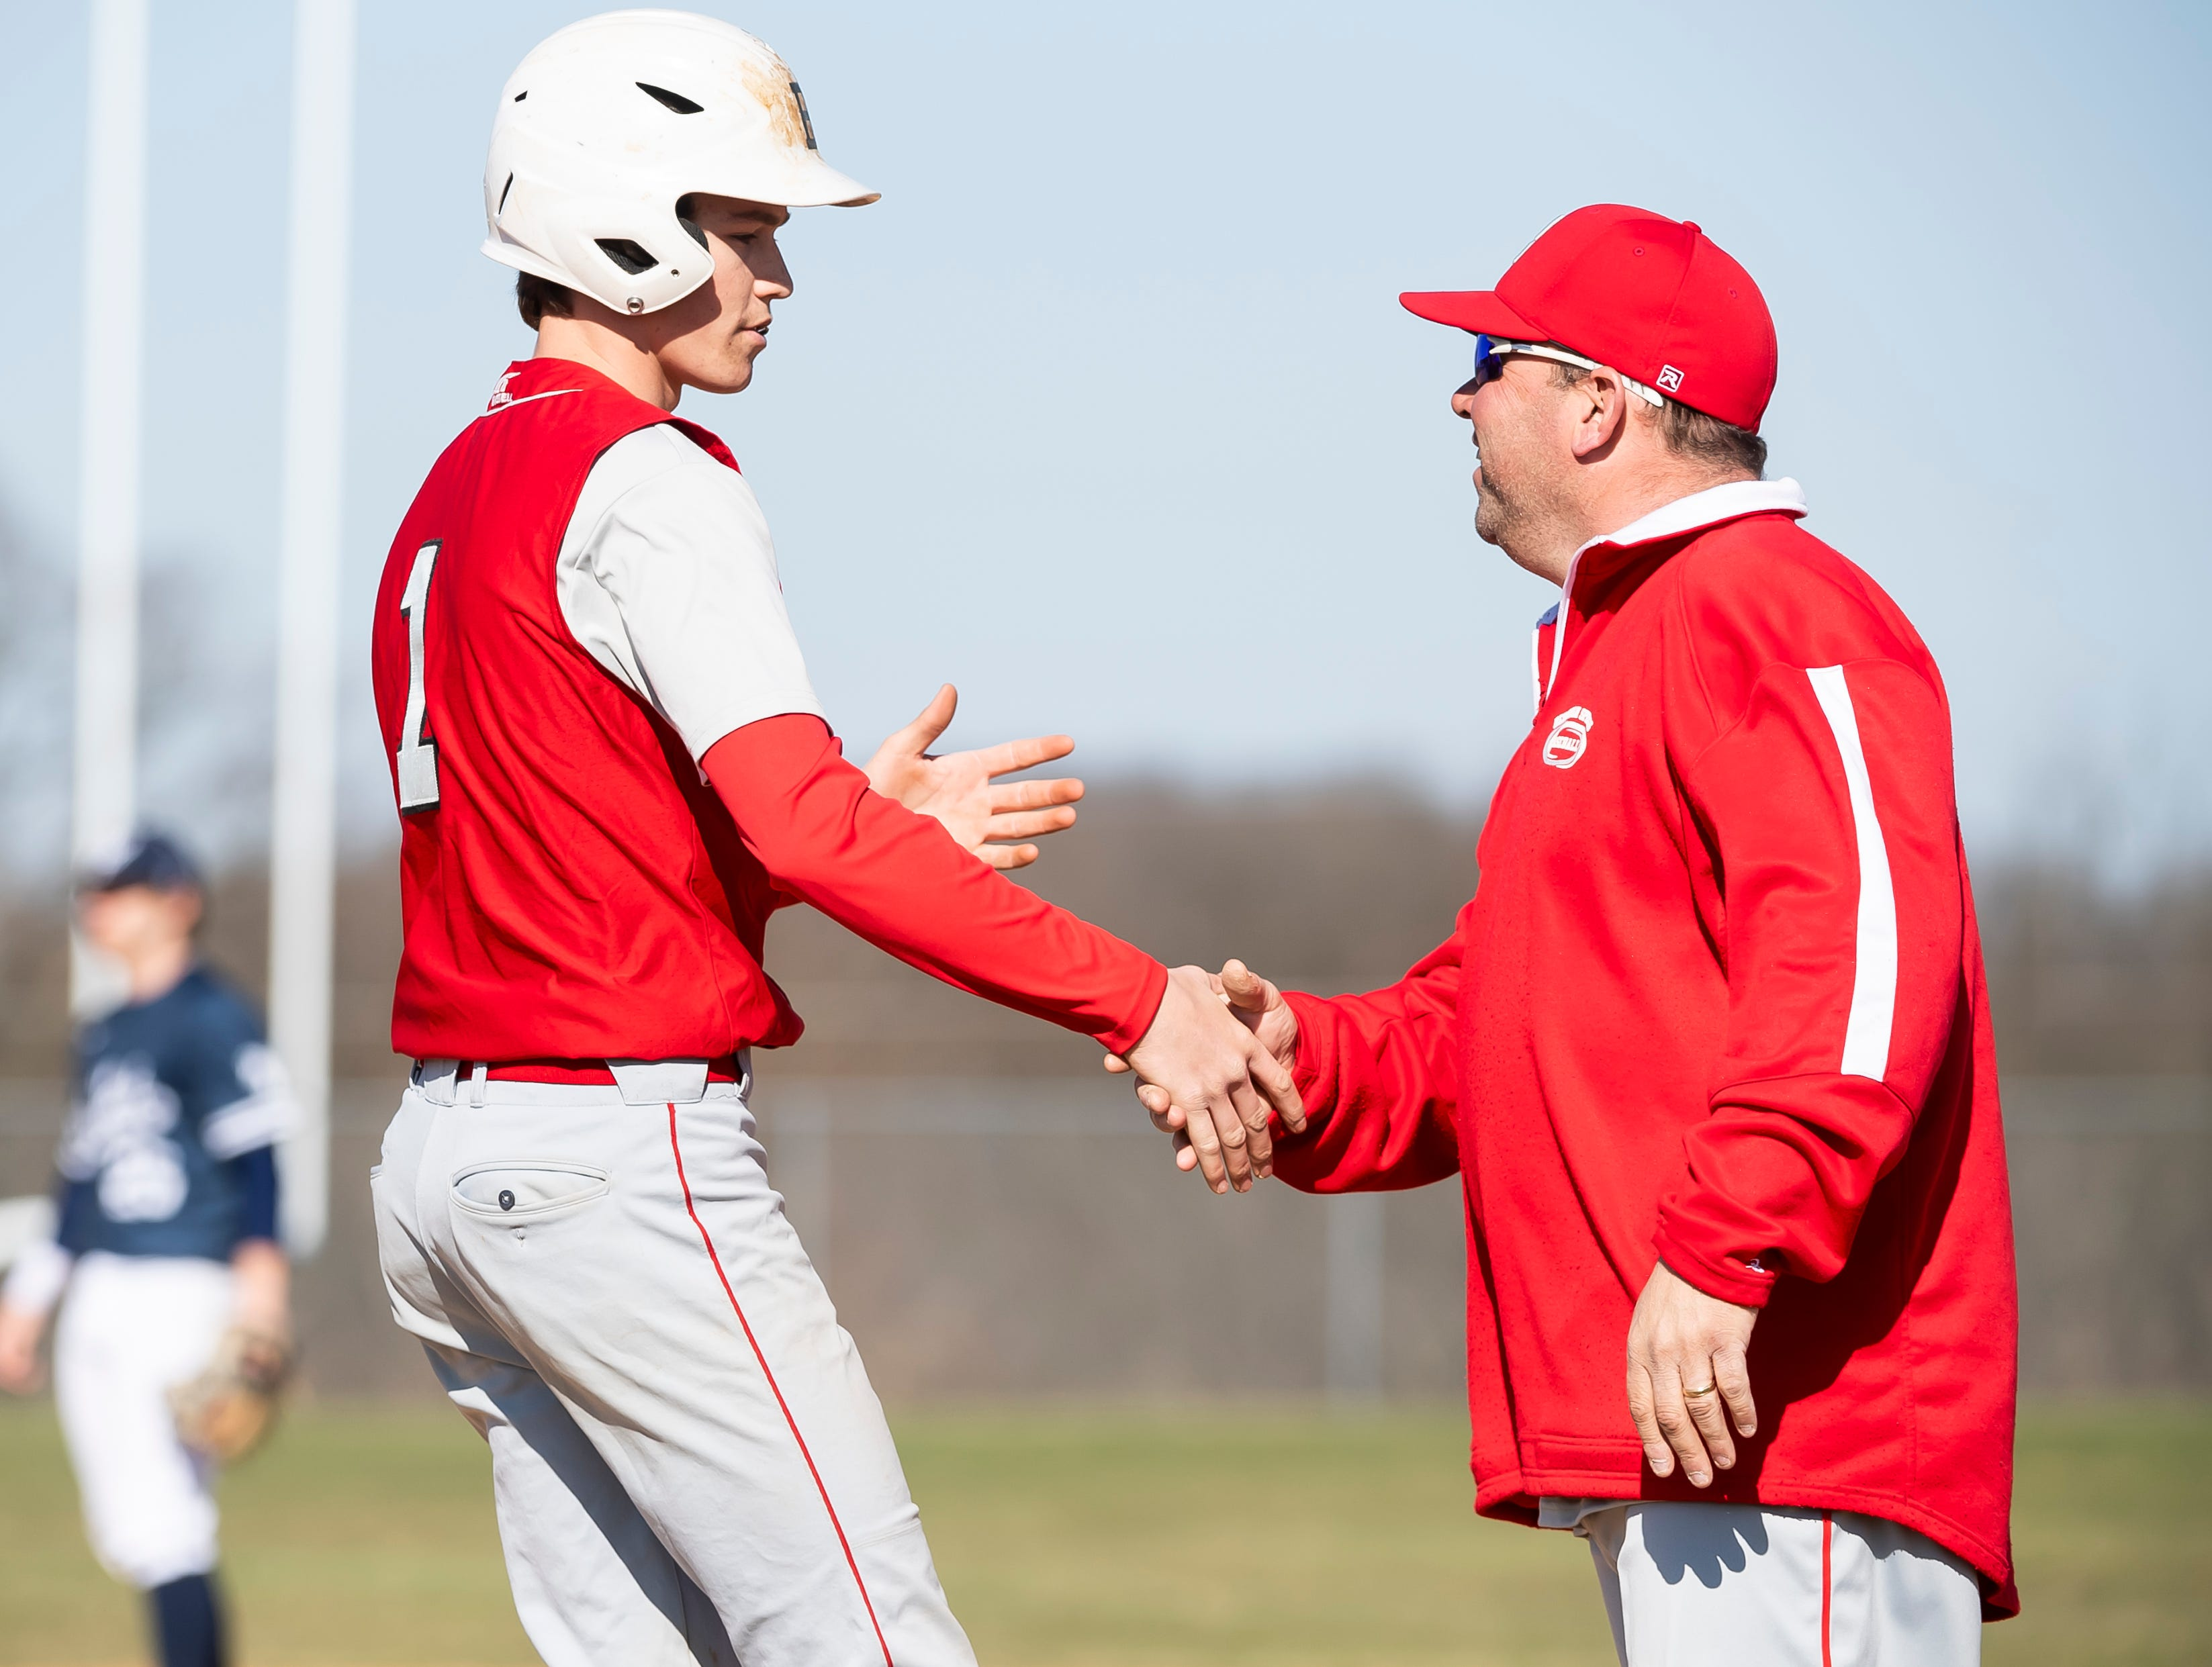 Bermudian Springs assistant coach Jeff Carpenter gives Tucker Byers (1) a handshake after Byers reached base during a YAIAA baseball game against West York on Wednesday, April 3, 2019. The Eagles fell 14-11.